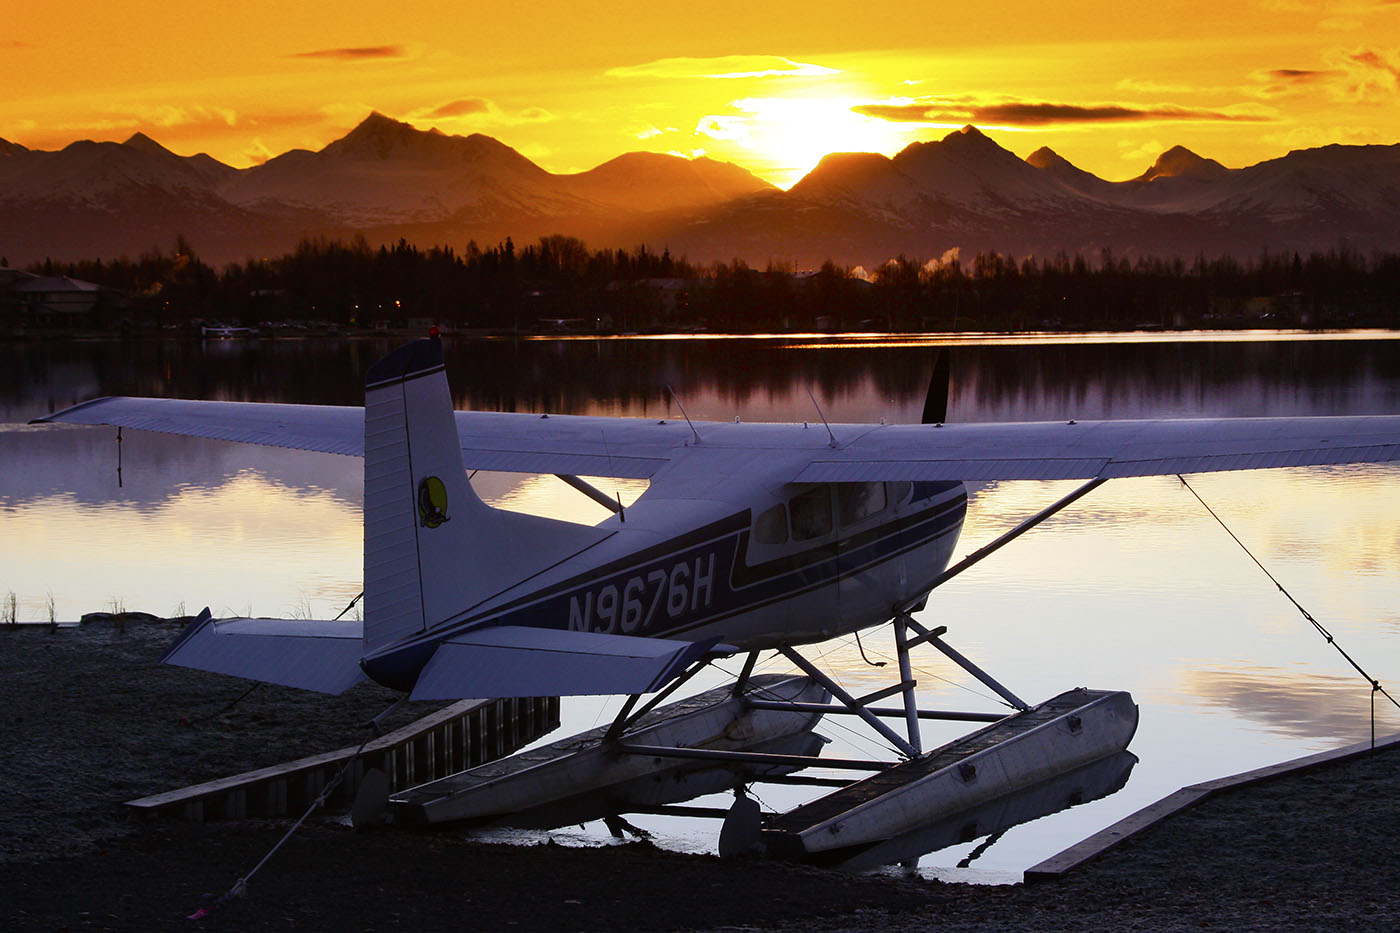 Best Alaska Aircraft Photogrpahy- Alaskafoto |Environmental portrait & portrait photographers